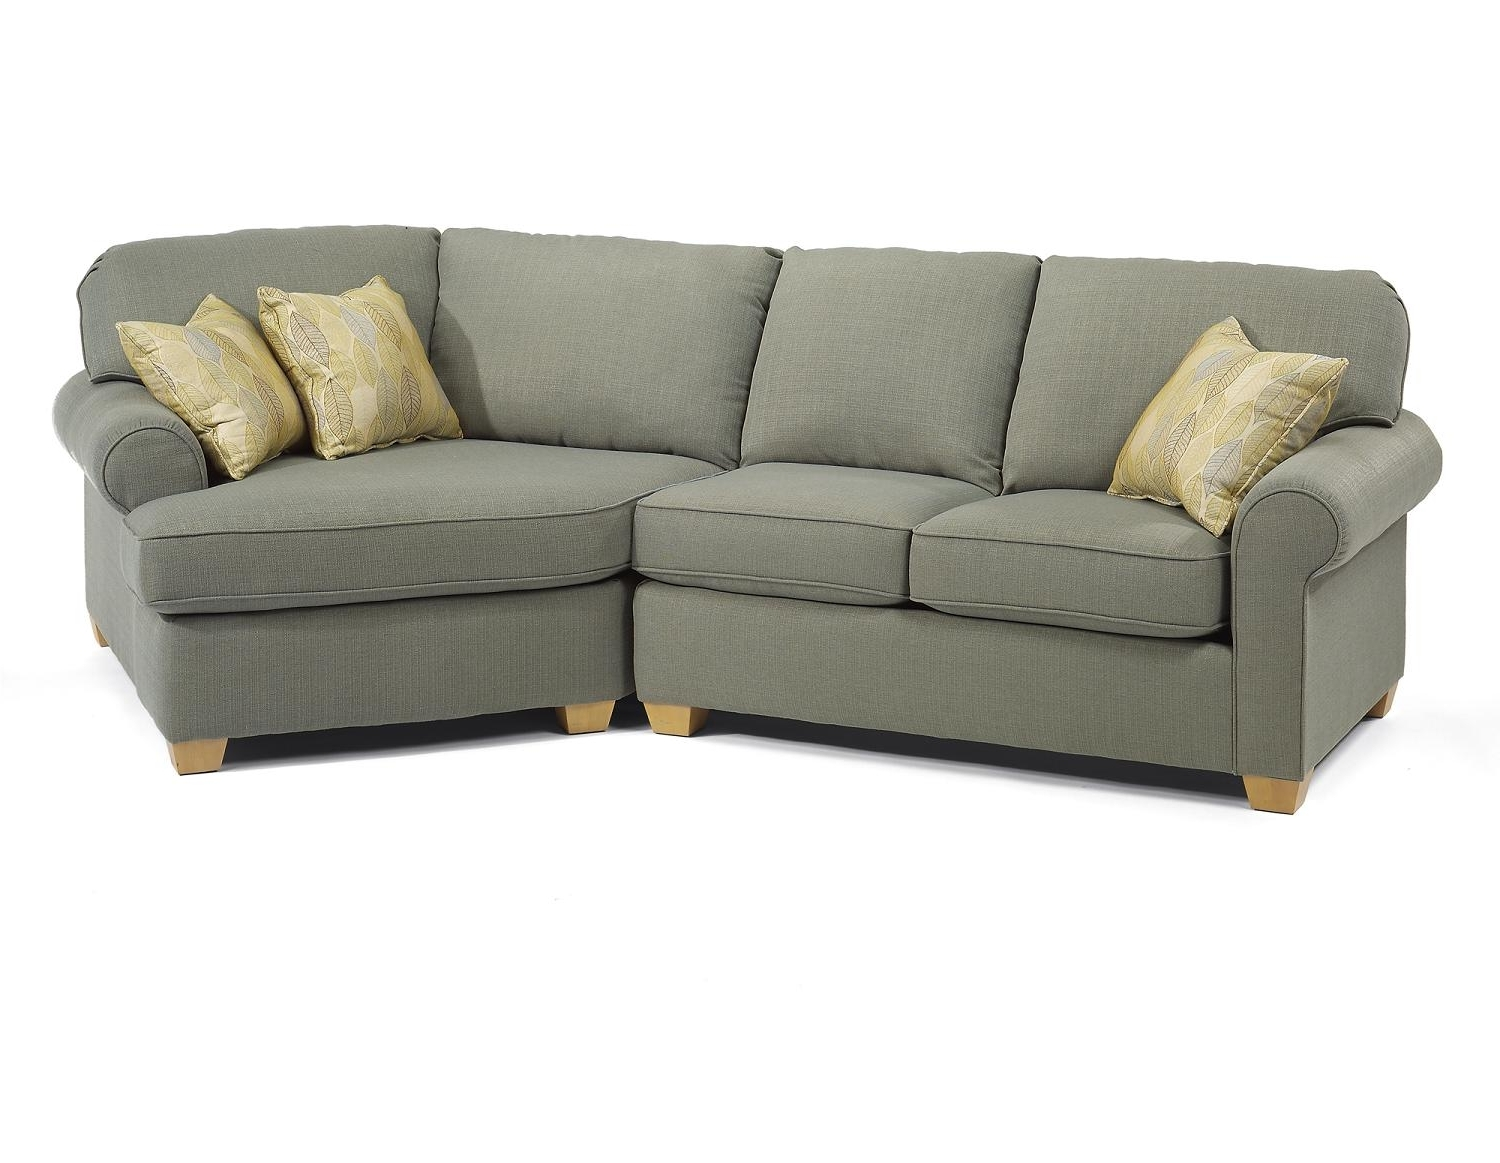 Inspiring Ideas And Select The Sectional Sofas With Chaise In Well Known Gold Sectional Sofas (View 19 of 20)